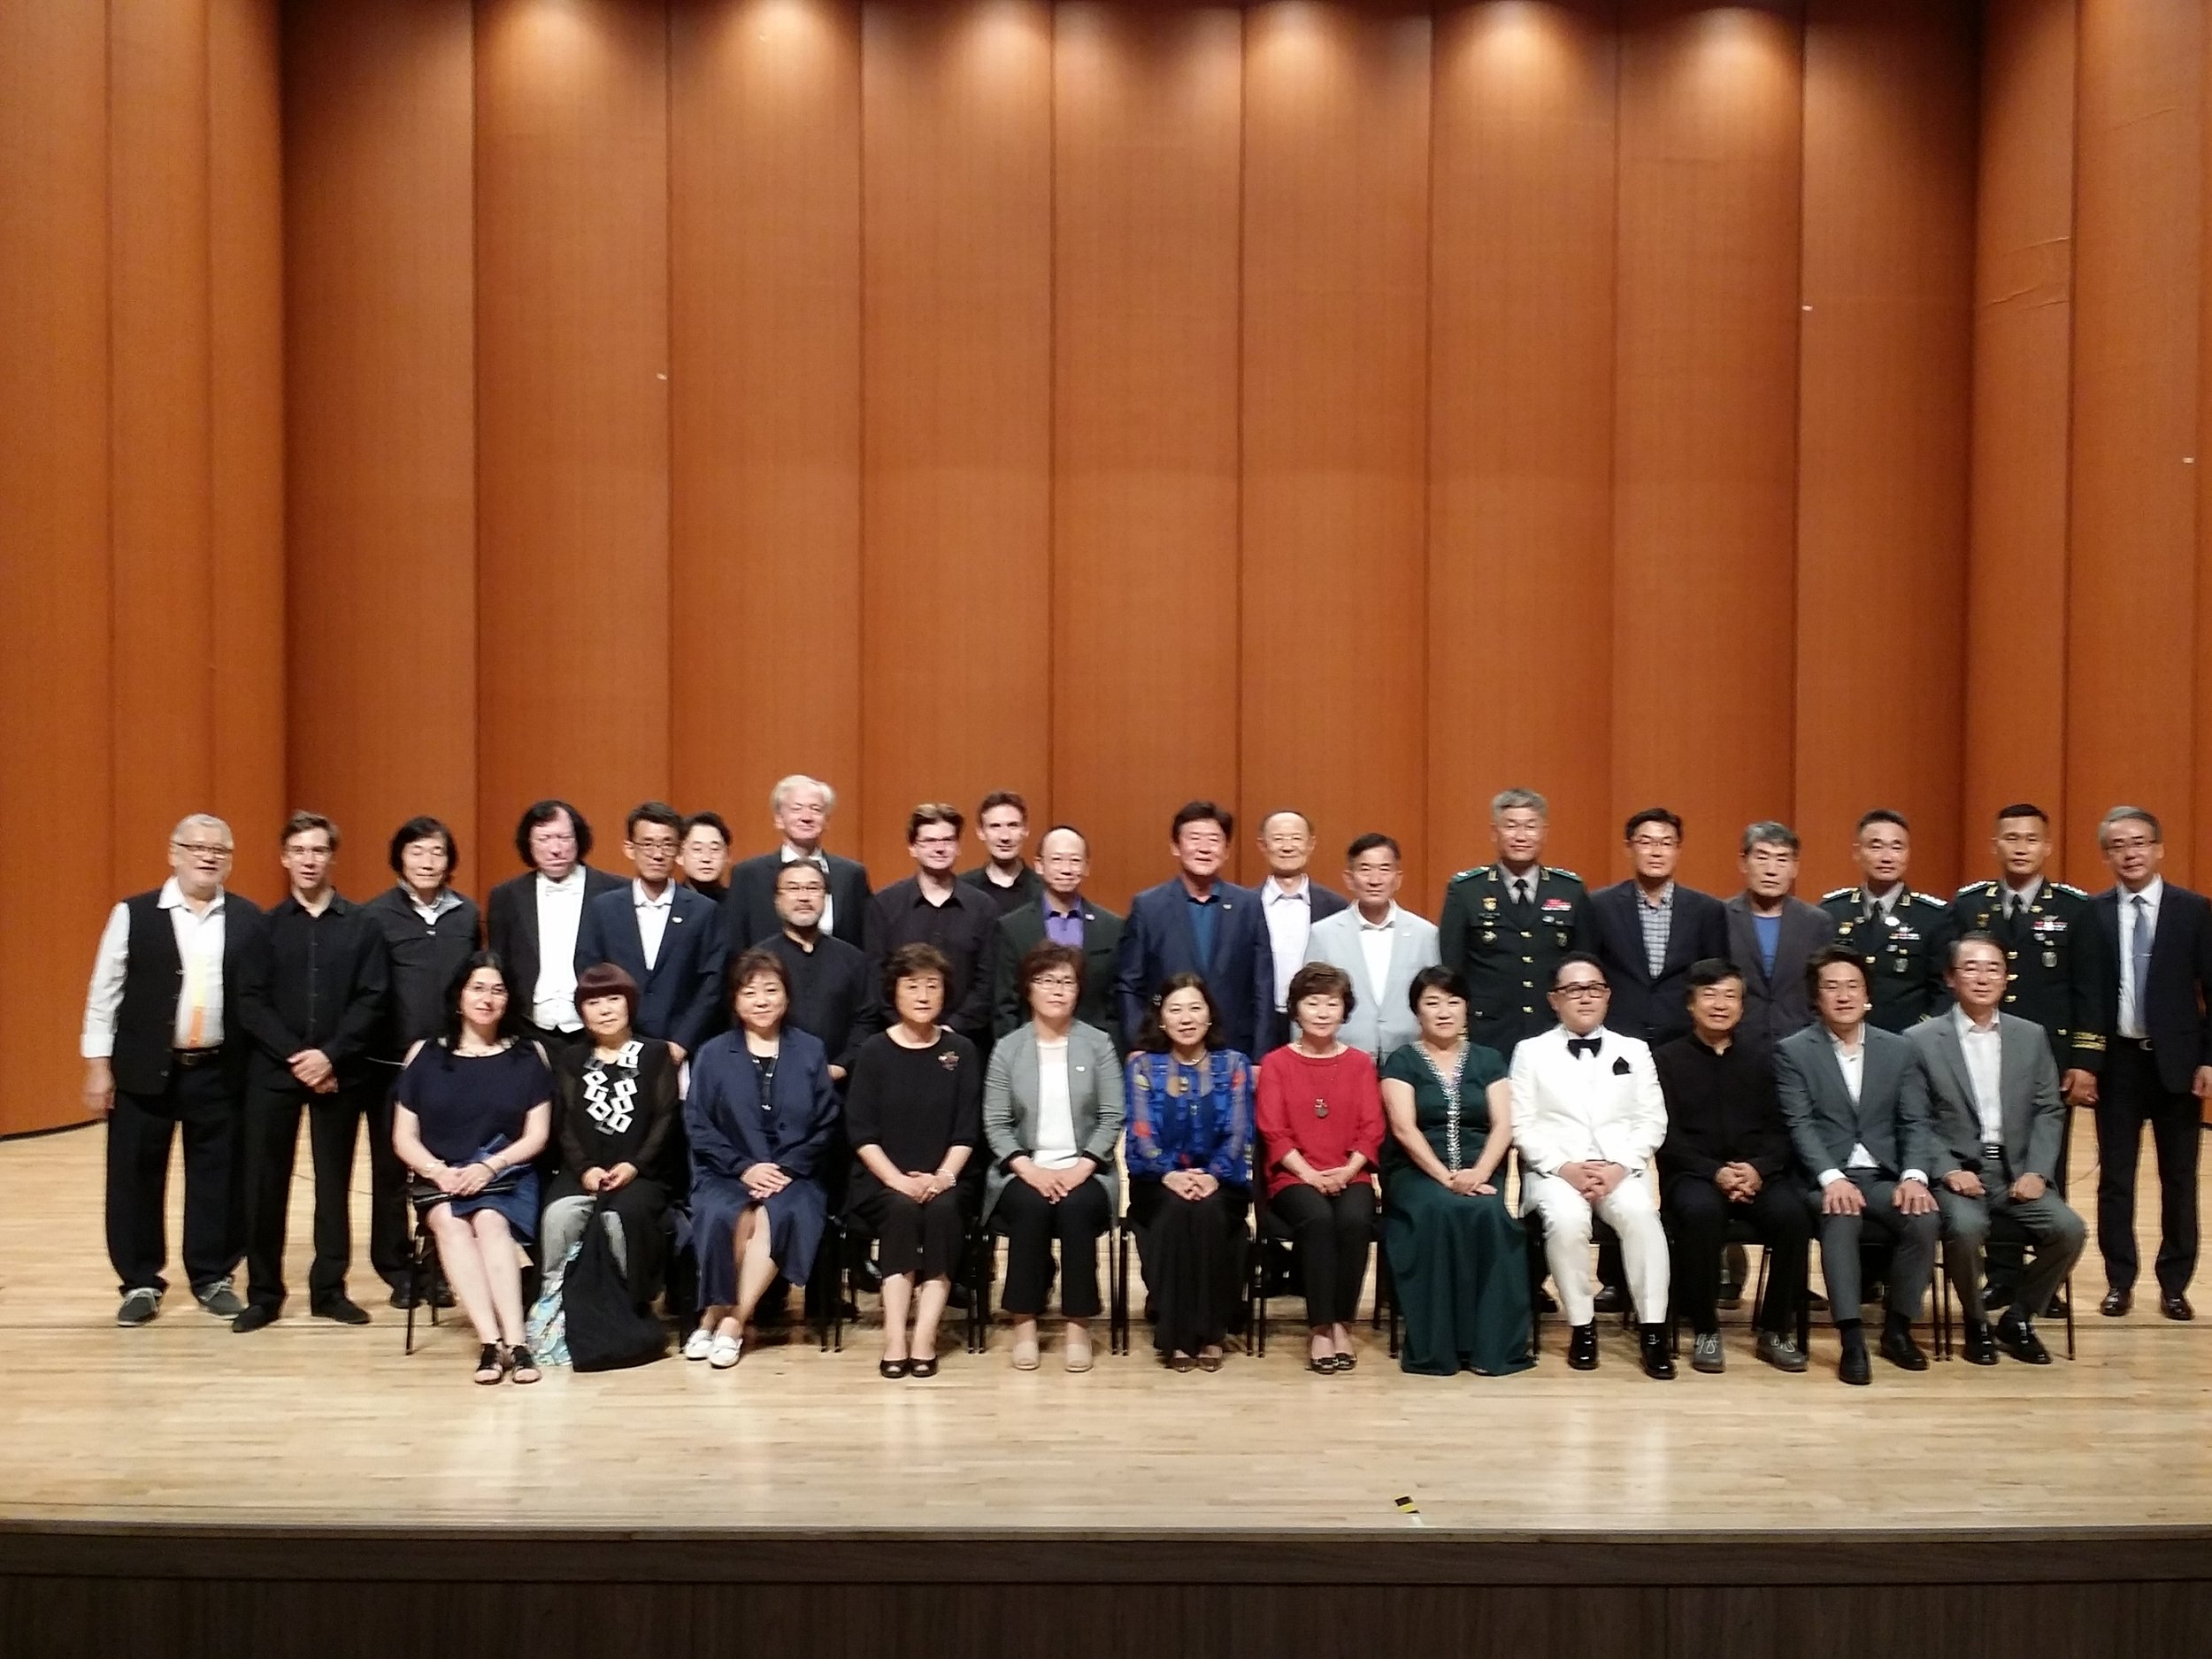 Performers and VIP guests after the Gala Concert on July 28, 2018